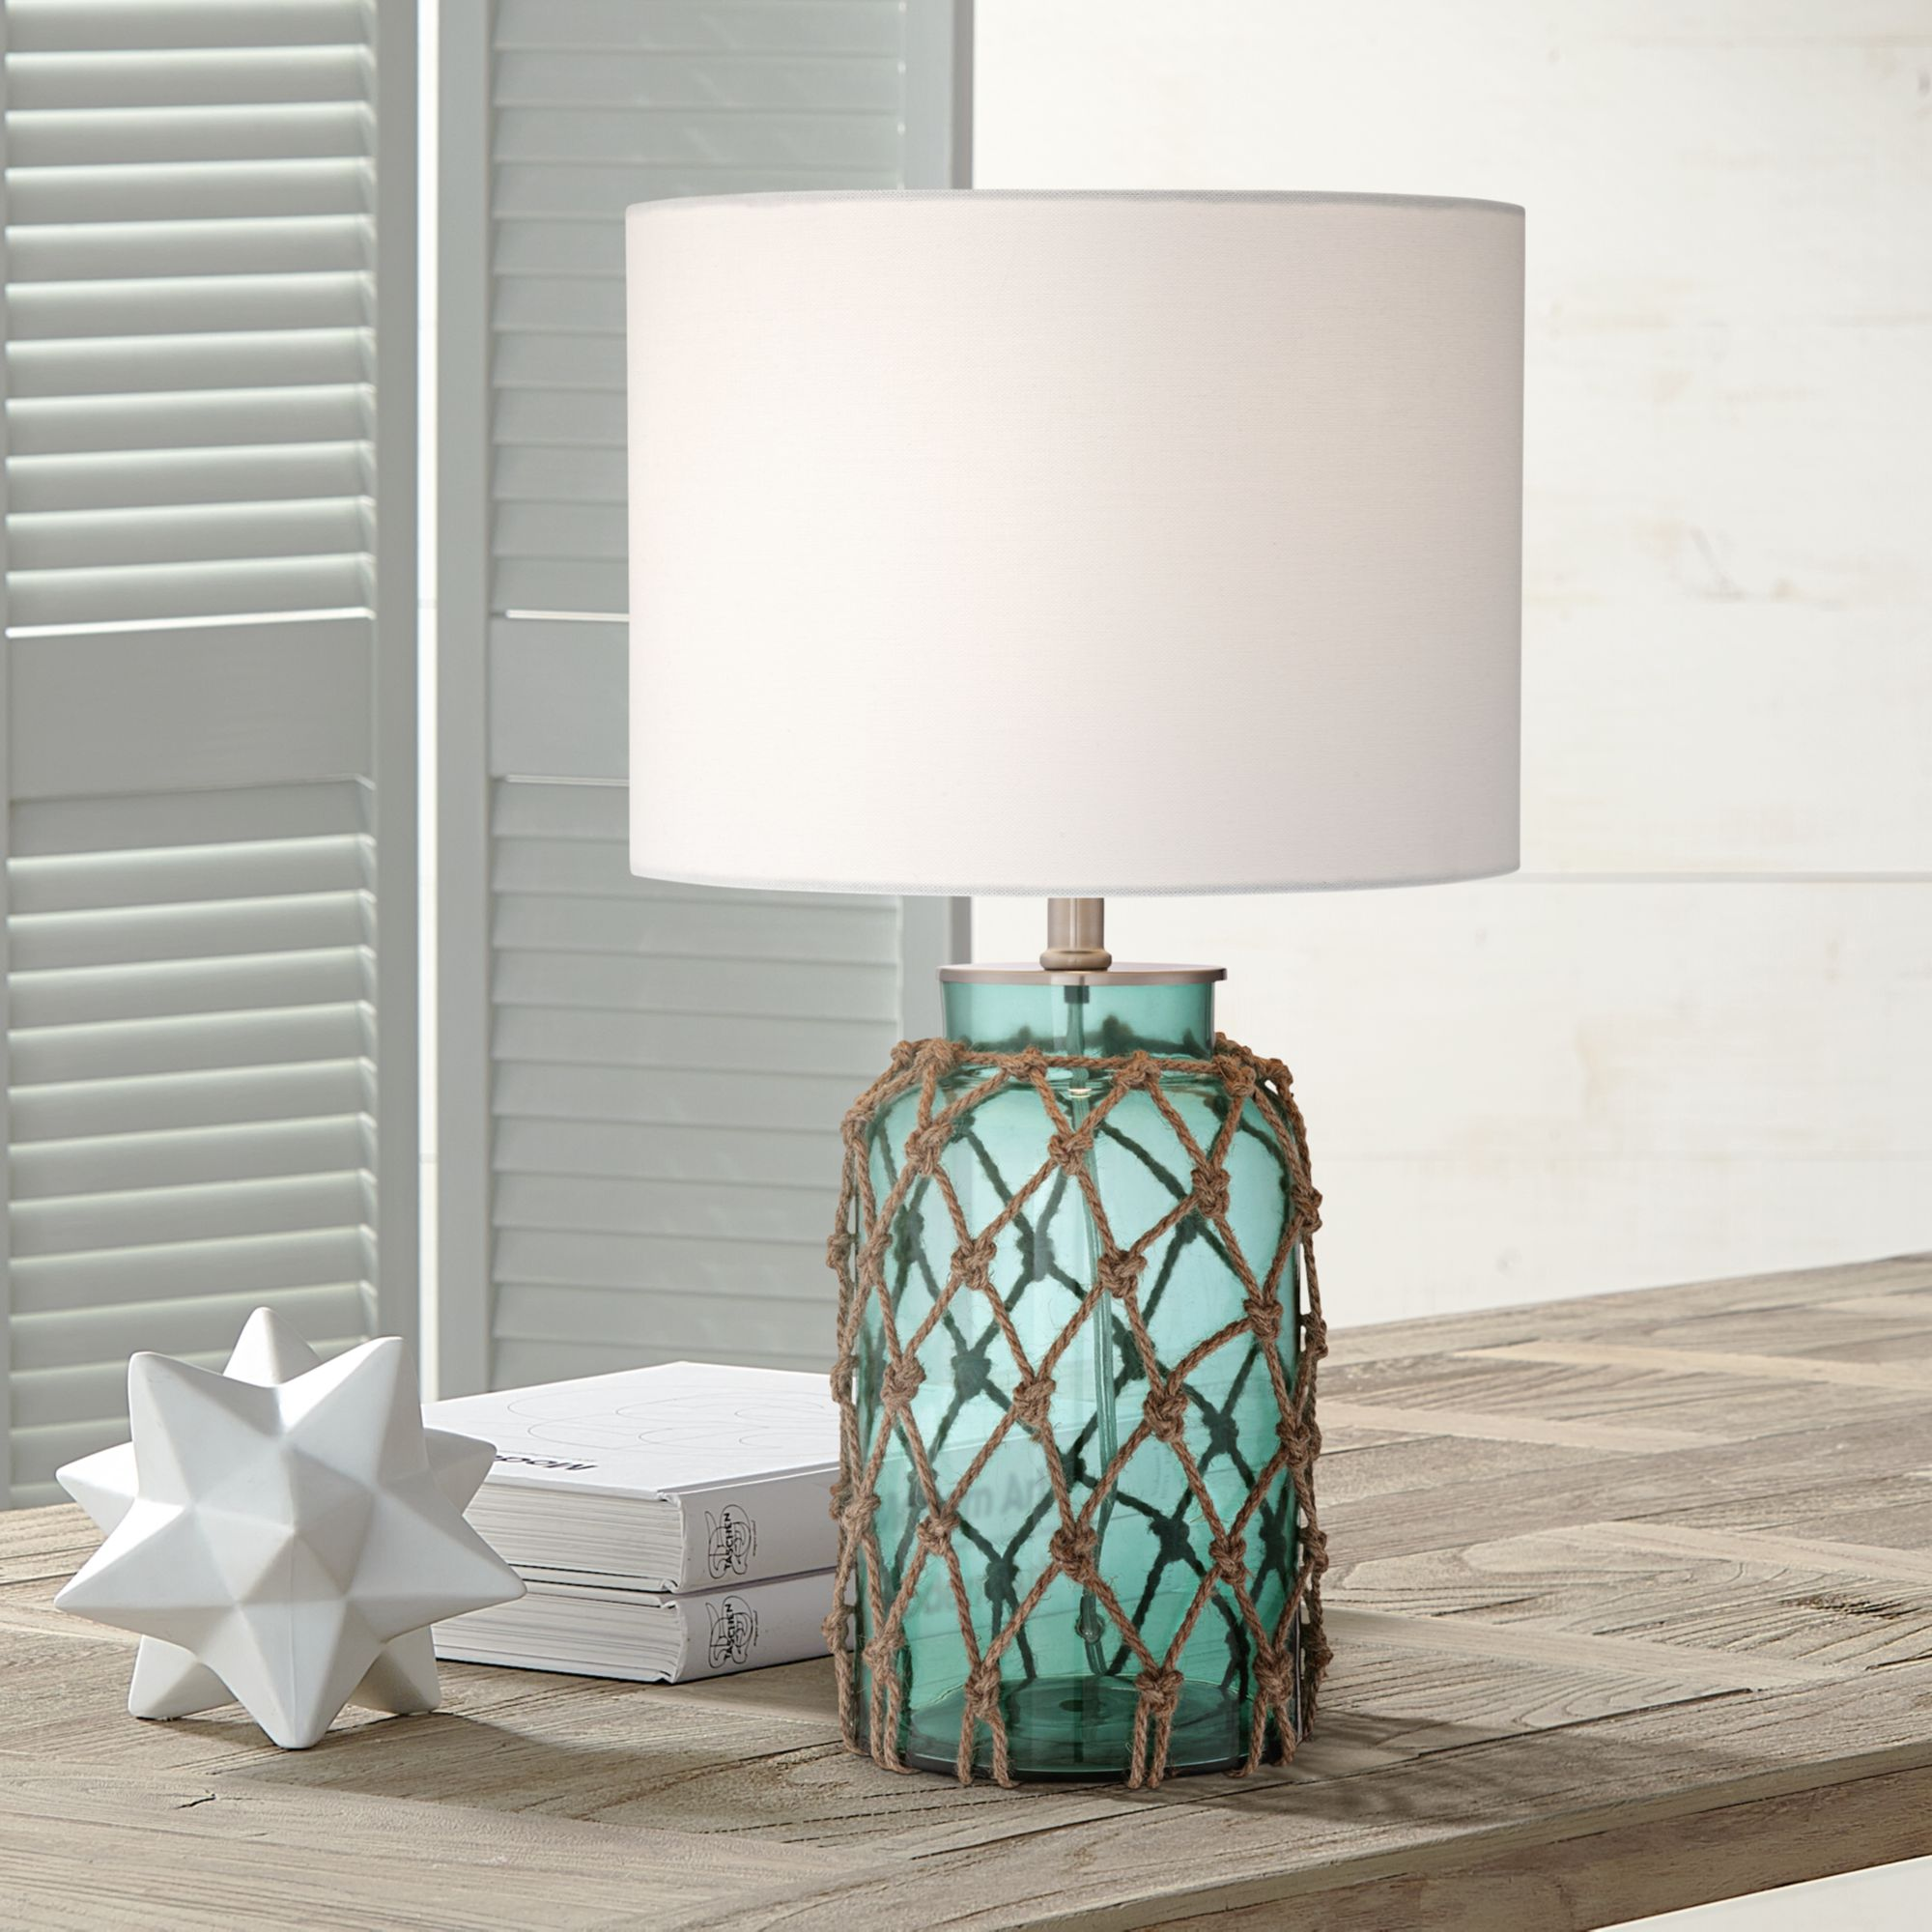 lighting nautical accent table lamp coastal blue green glass lamps rope off white drum shade for living room family bedroom sofa ping funky bedside desk dale tiffany dragonfly